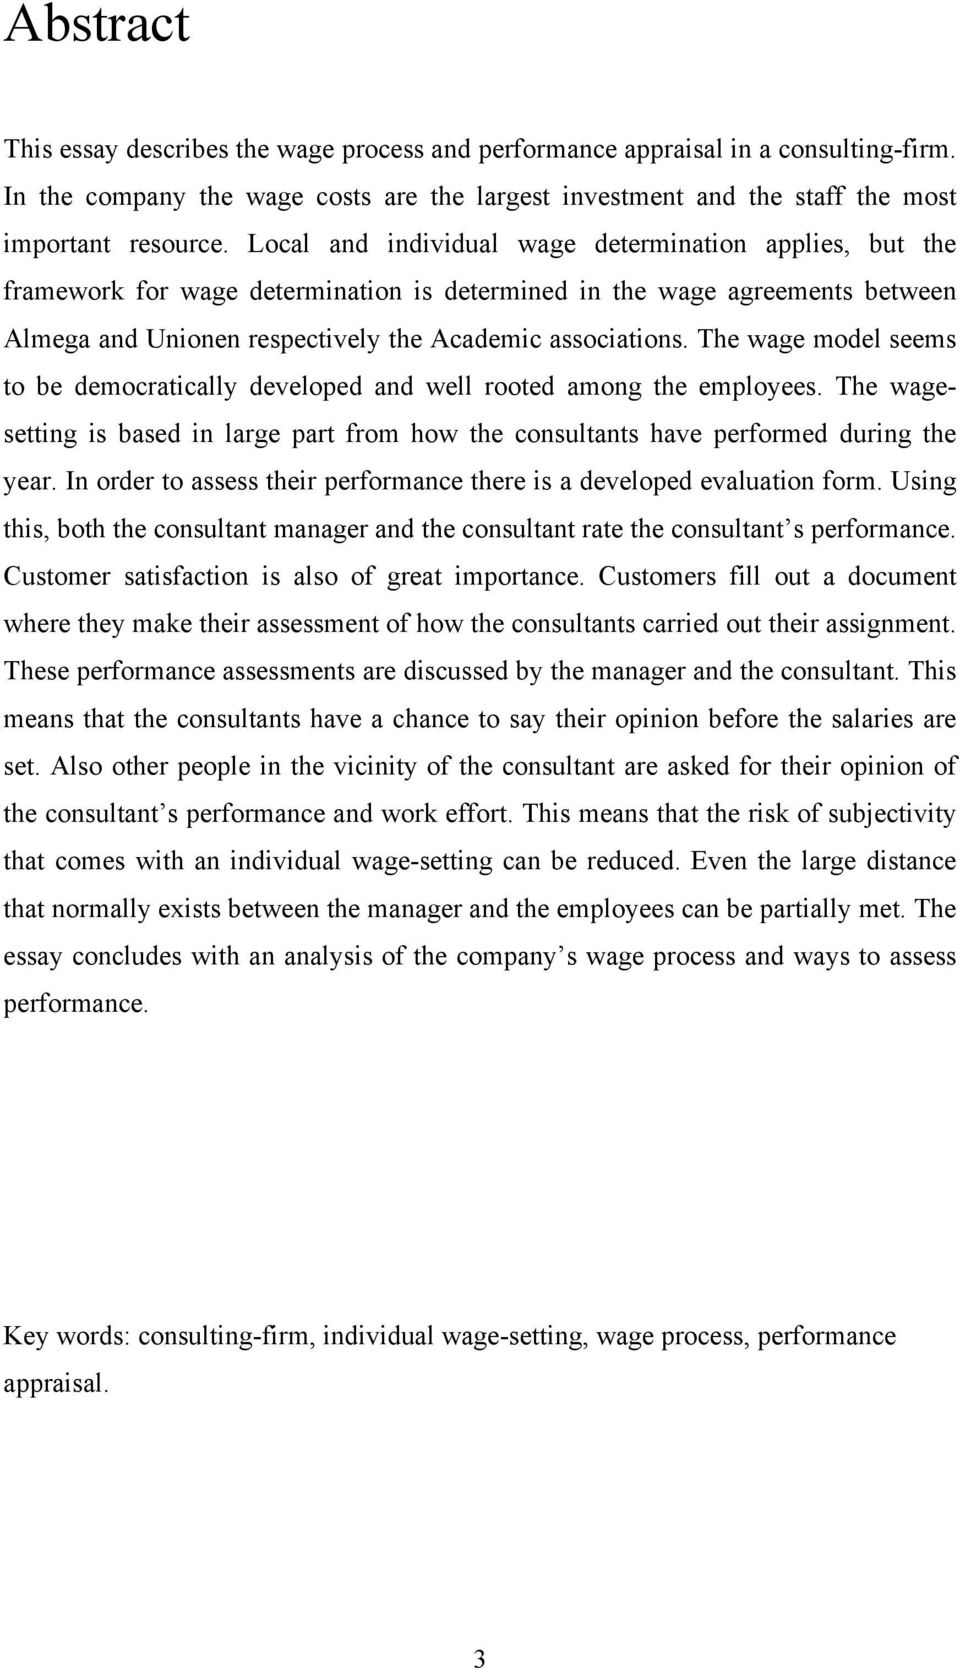 The wage model seems to be democratically developed and well rooted among the employees. The wagesetting is based in large part from how the consultants have performed during the year.